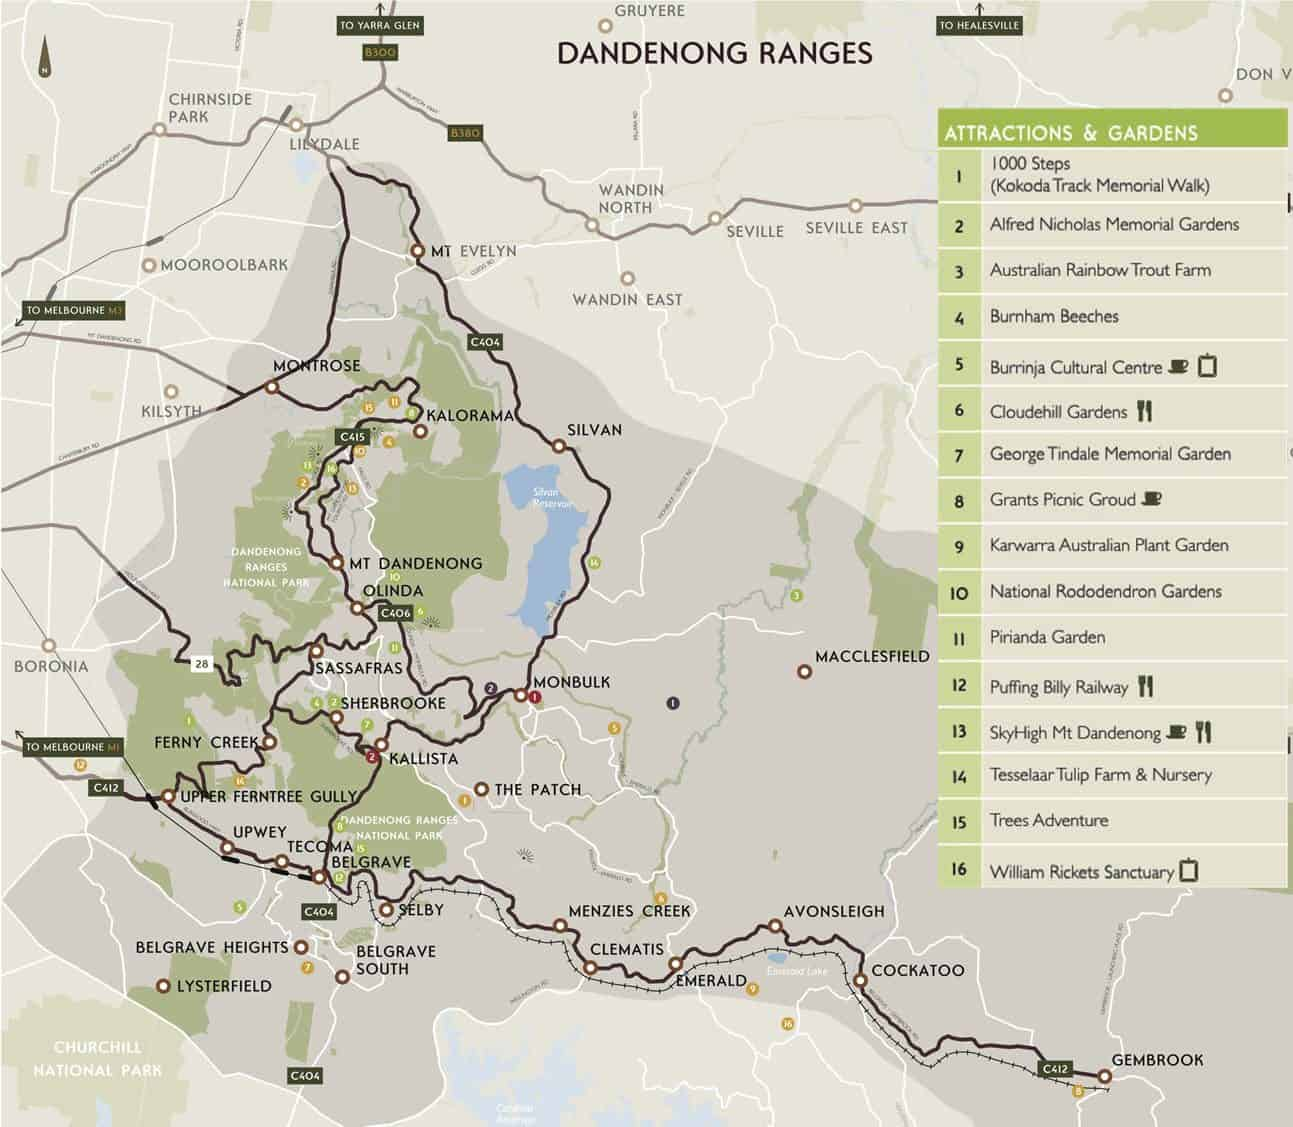 Dandenong Ranges Map